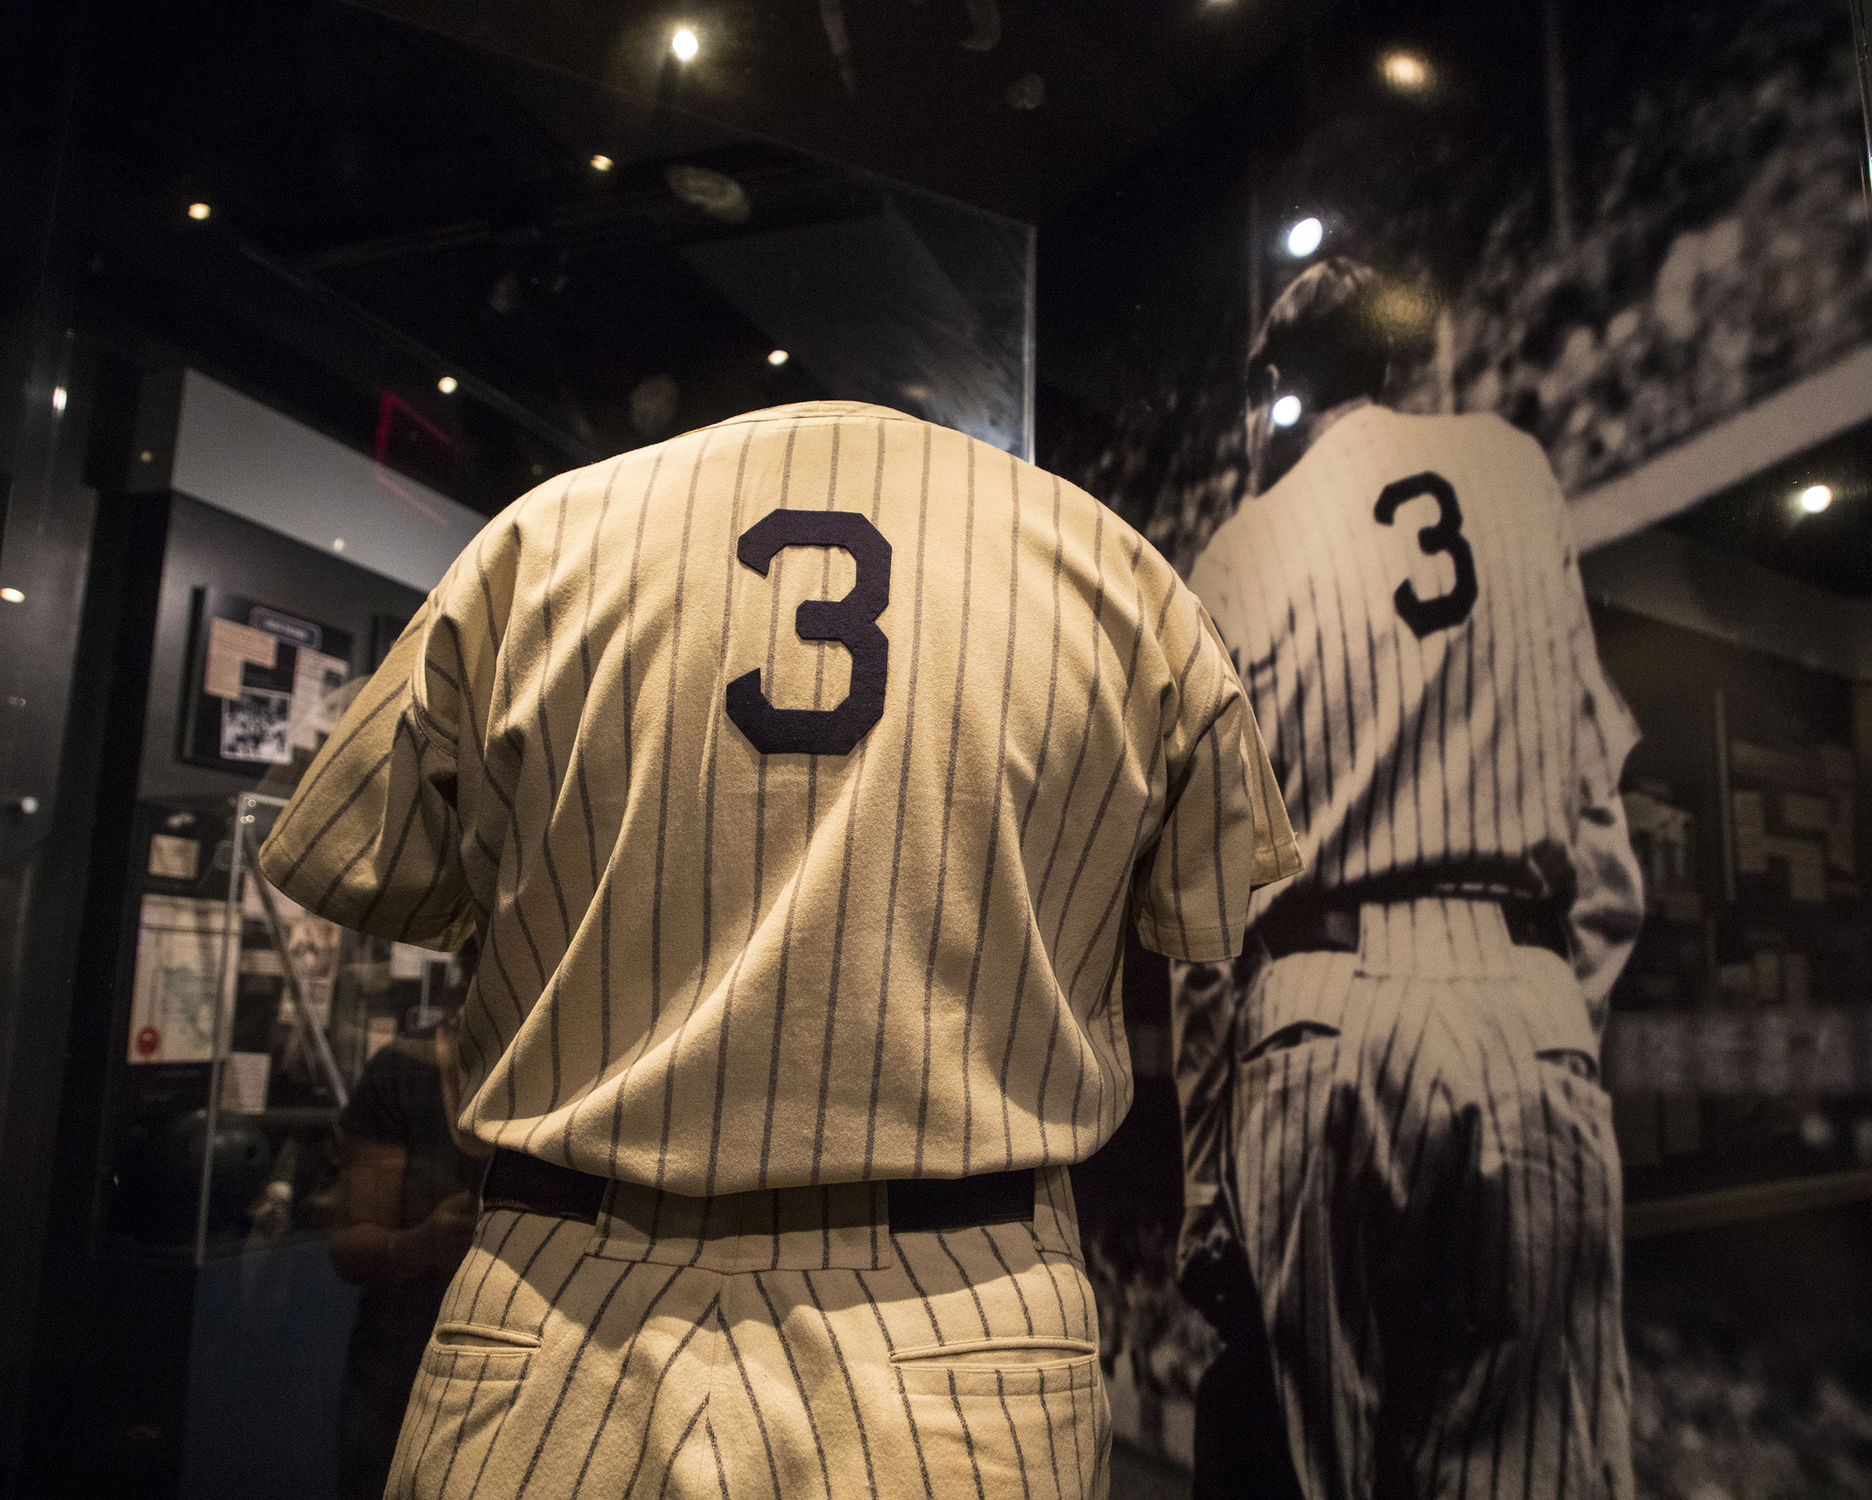 The Babe Ruth jersey on display in the Museum s  em Babe Ruth  His 106503e3a5b